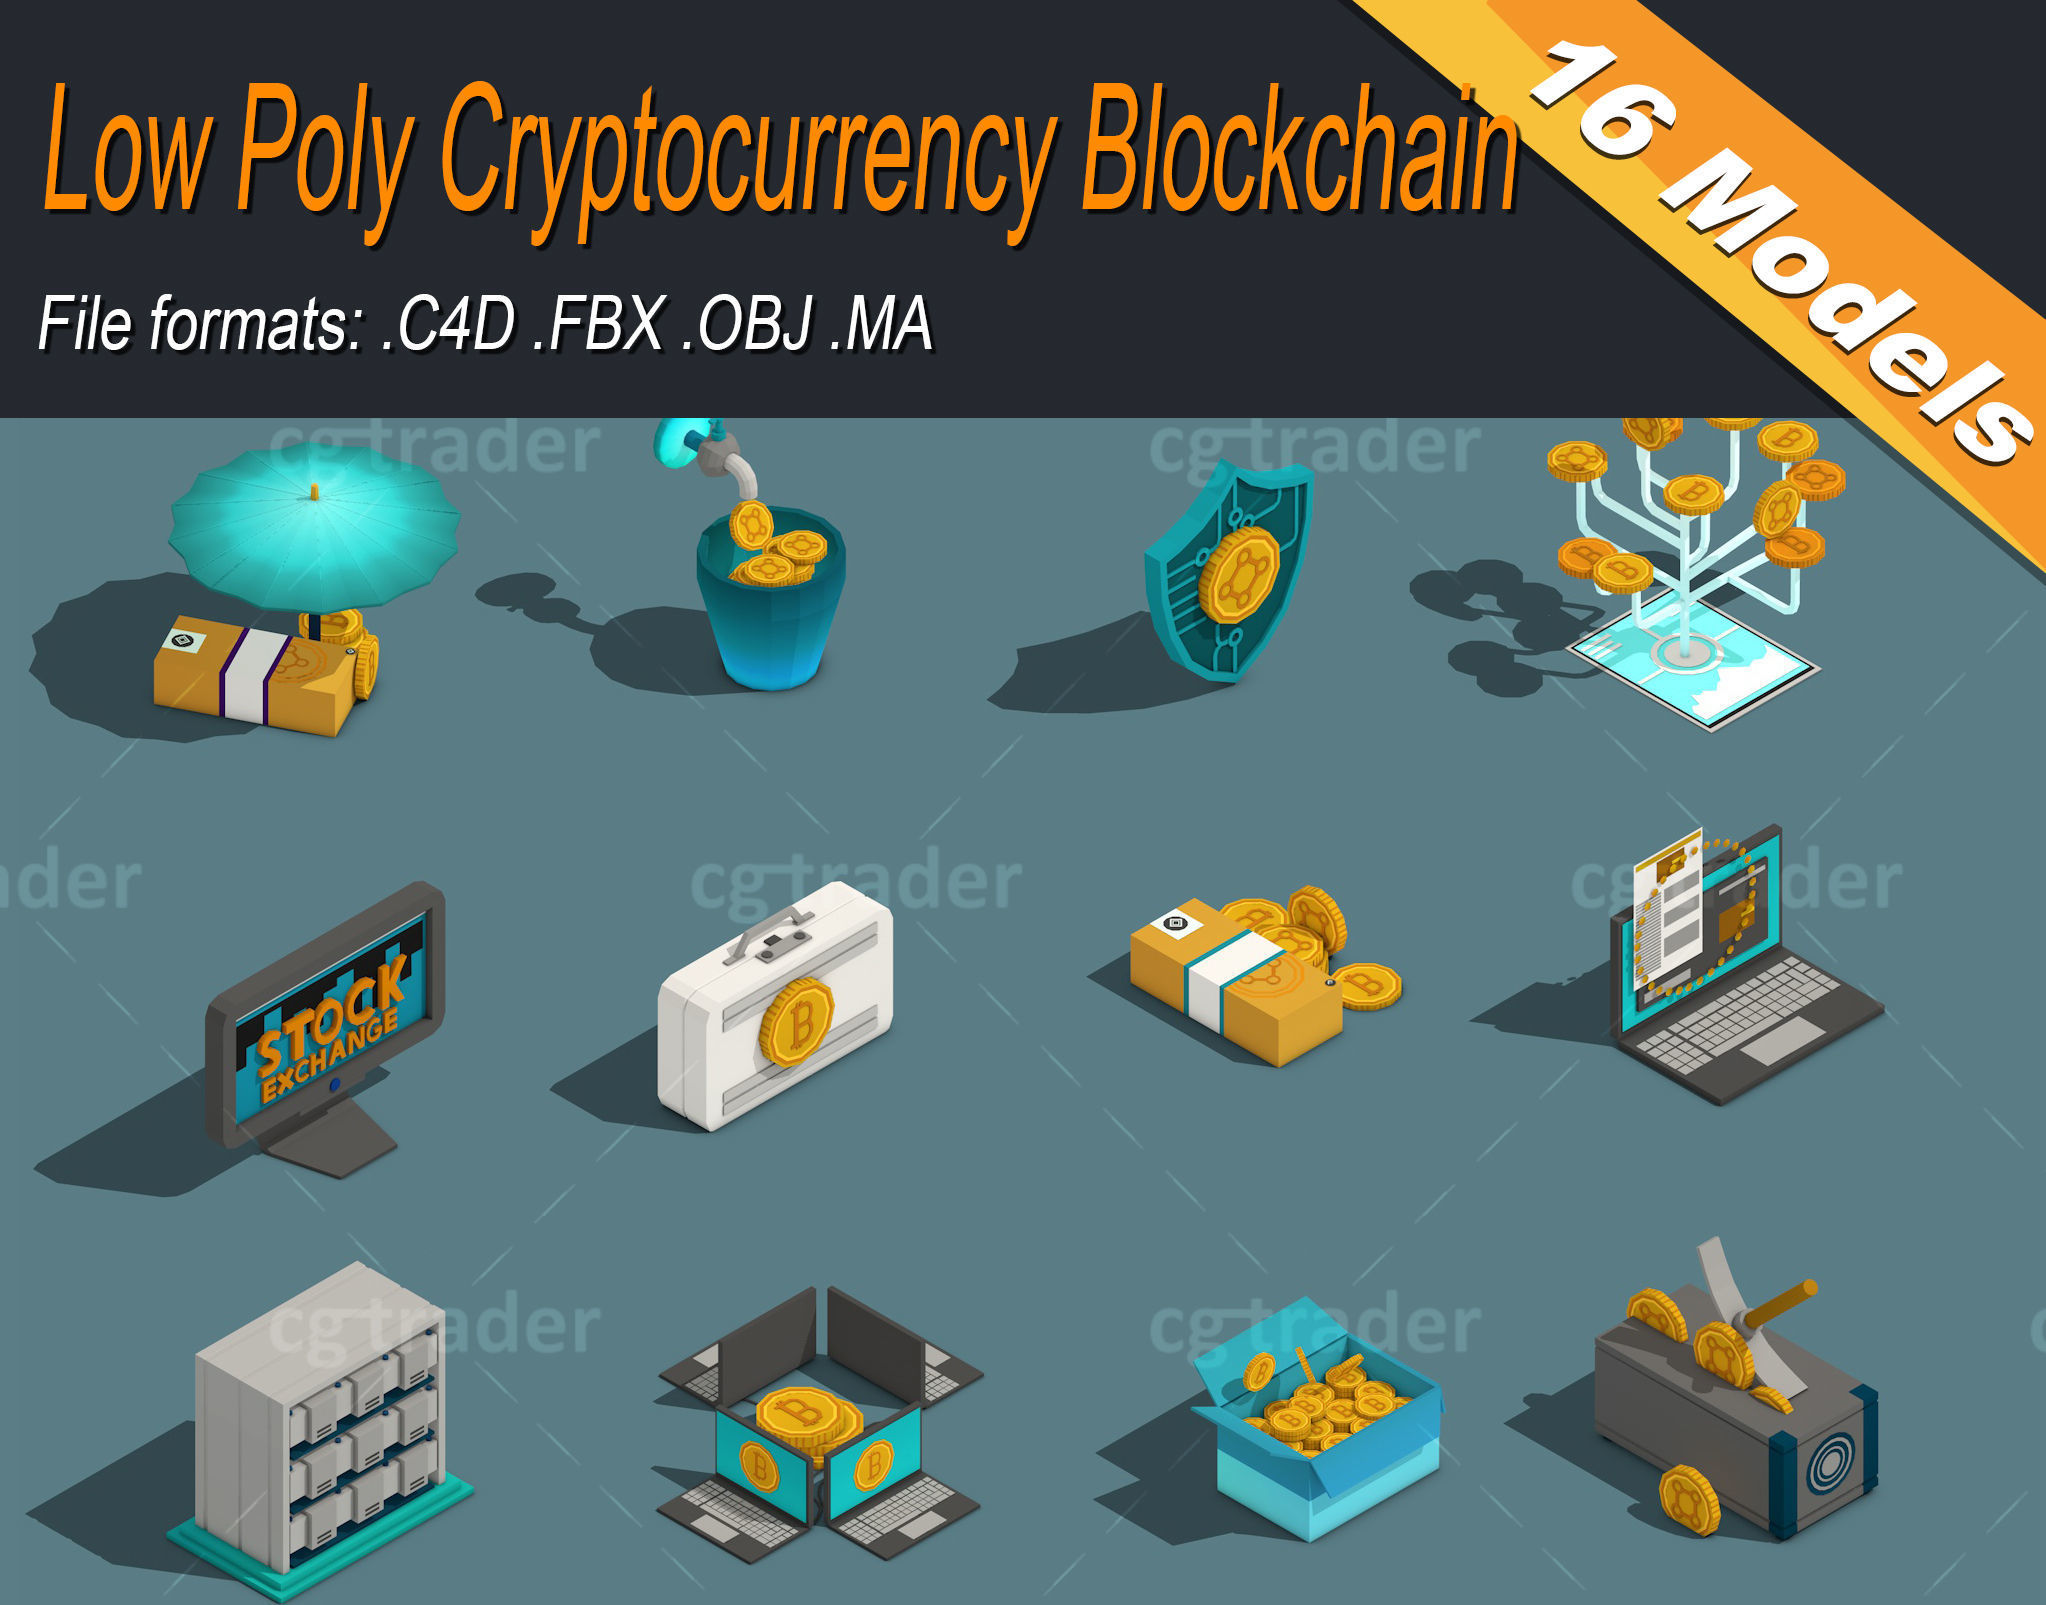 Low Poly Cryptocurrency Blockchain Isometric Pack 01